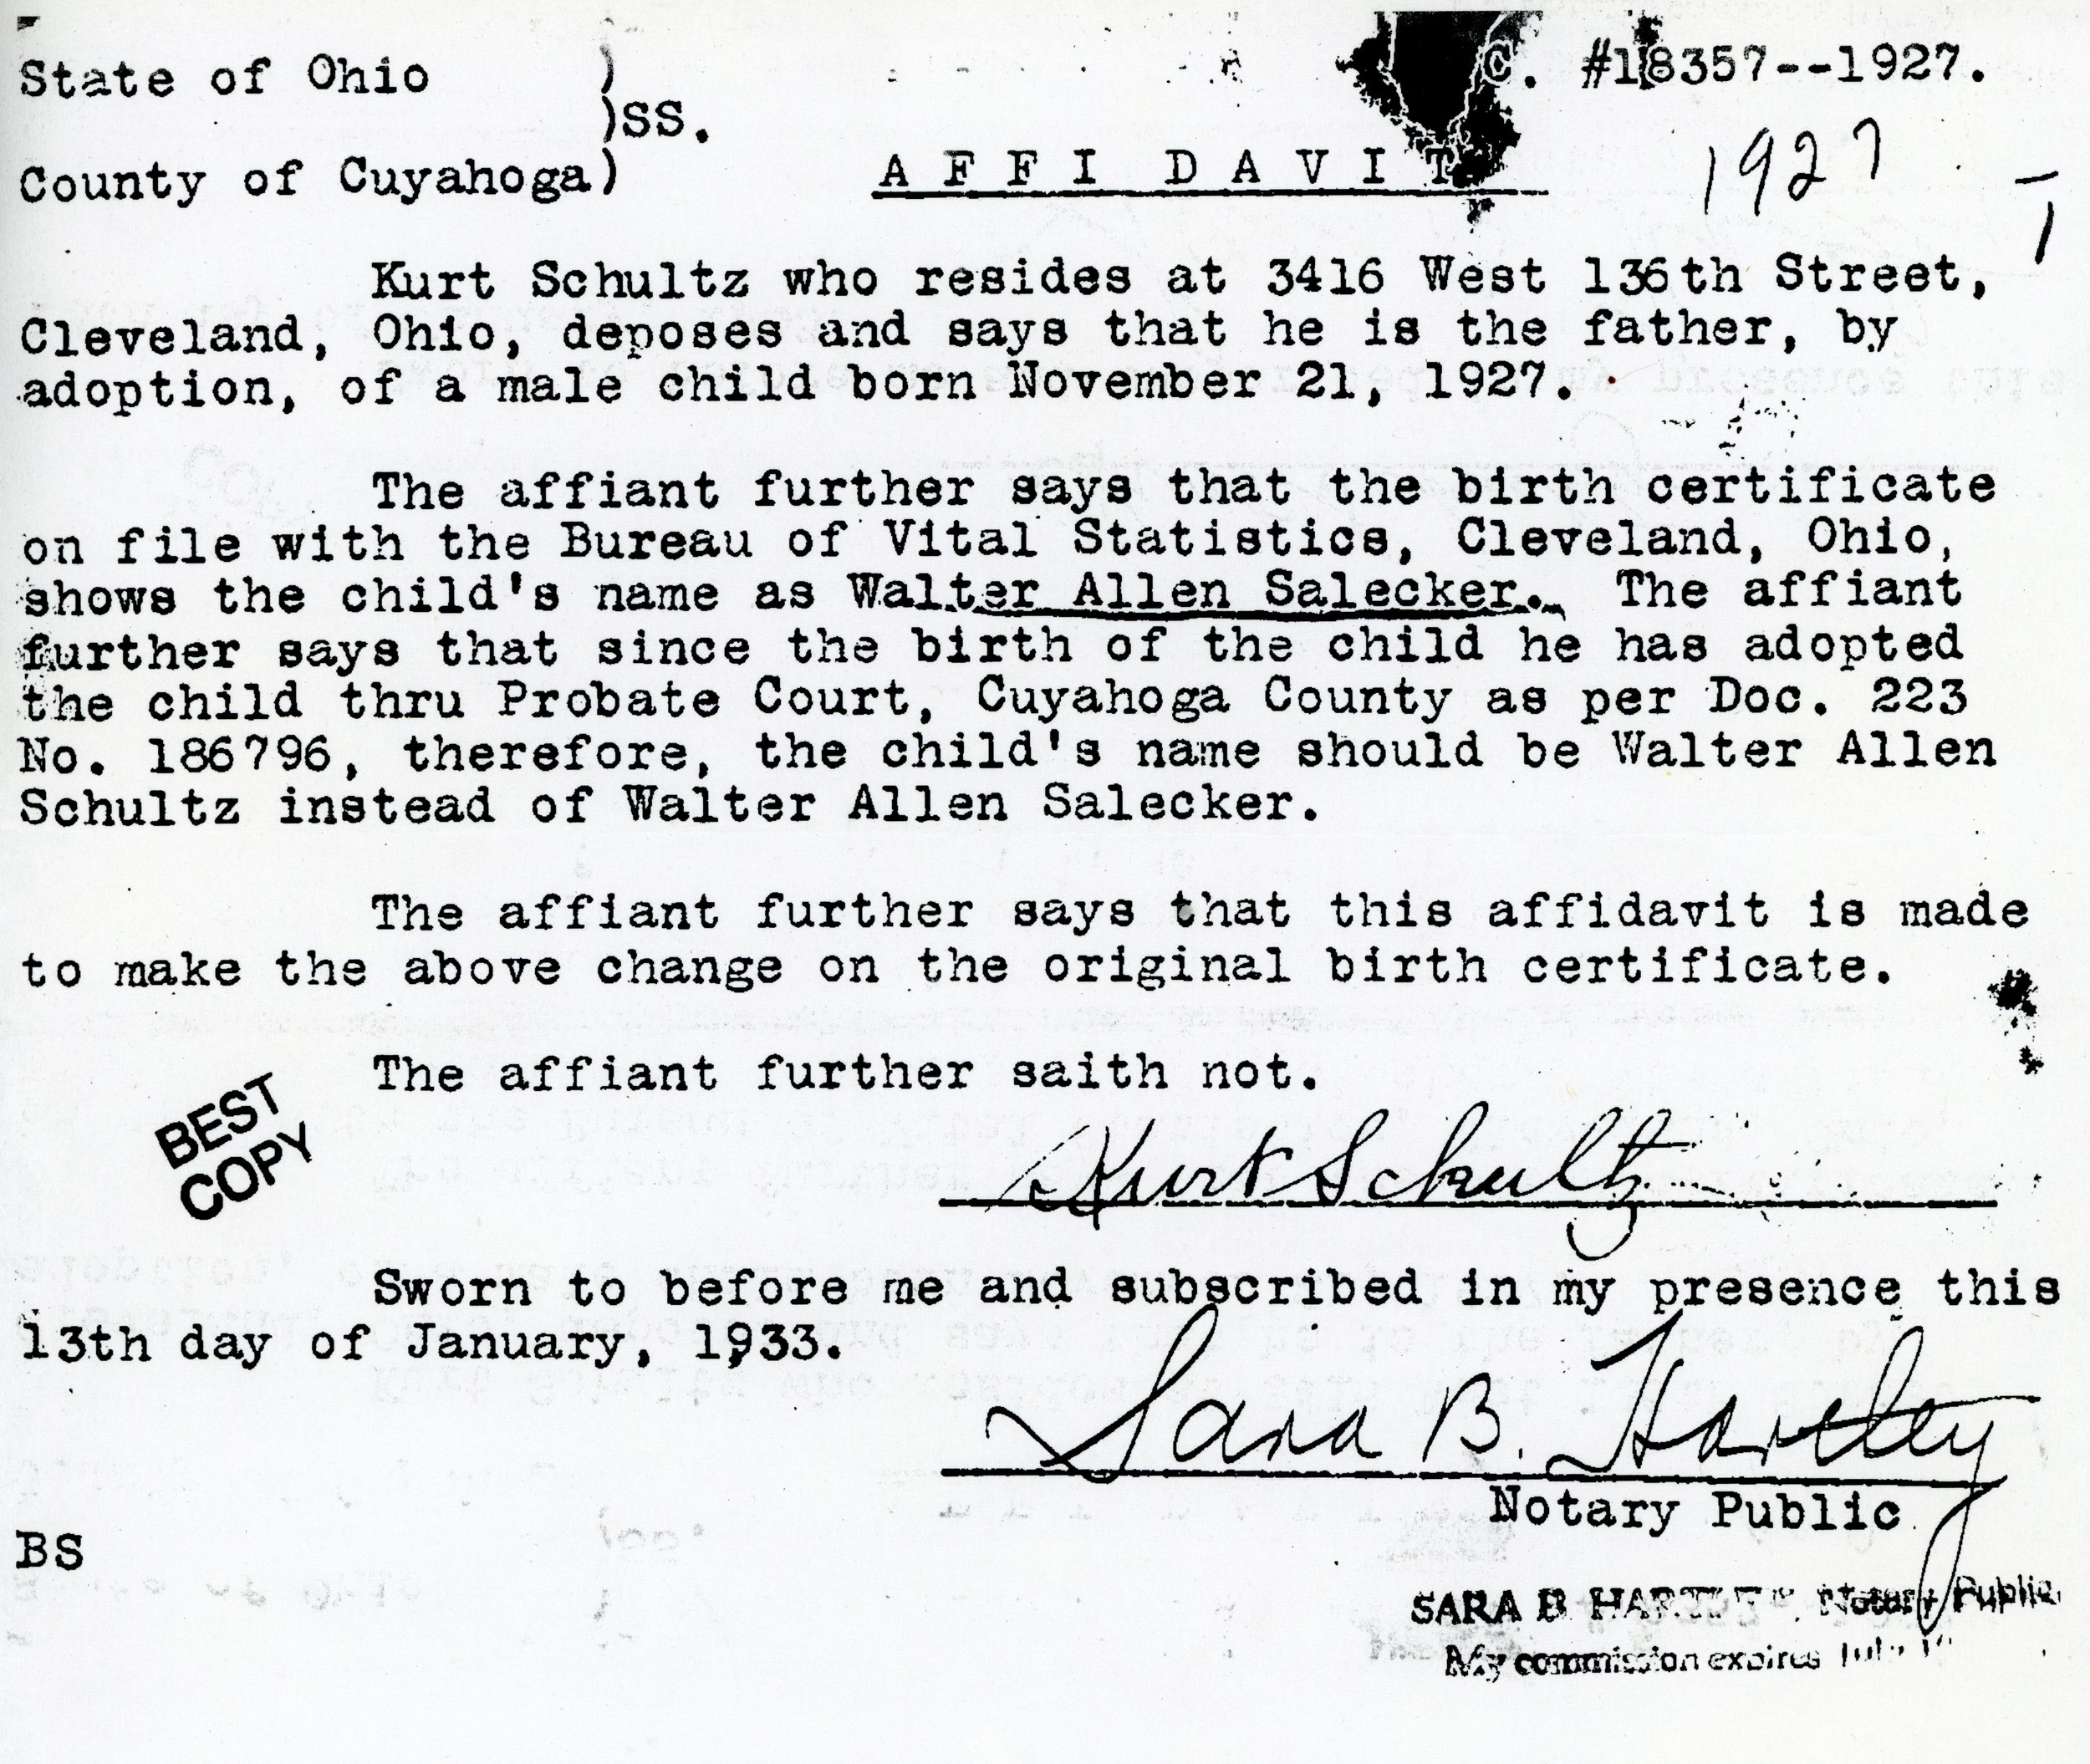 This affidavit proves that grandpa was adopted by Kurt schultz and that his birth certificate was officially changed.  Retrieved from the state of ohio department of vital statistics. In the possession of owen m. mccafferty II